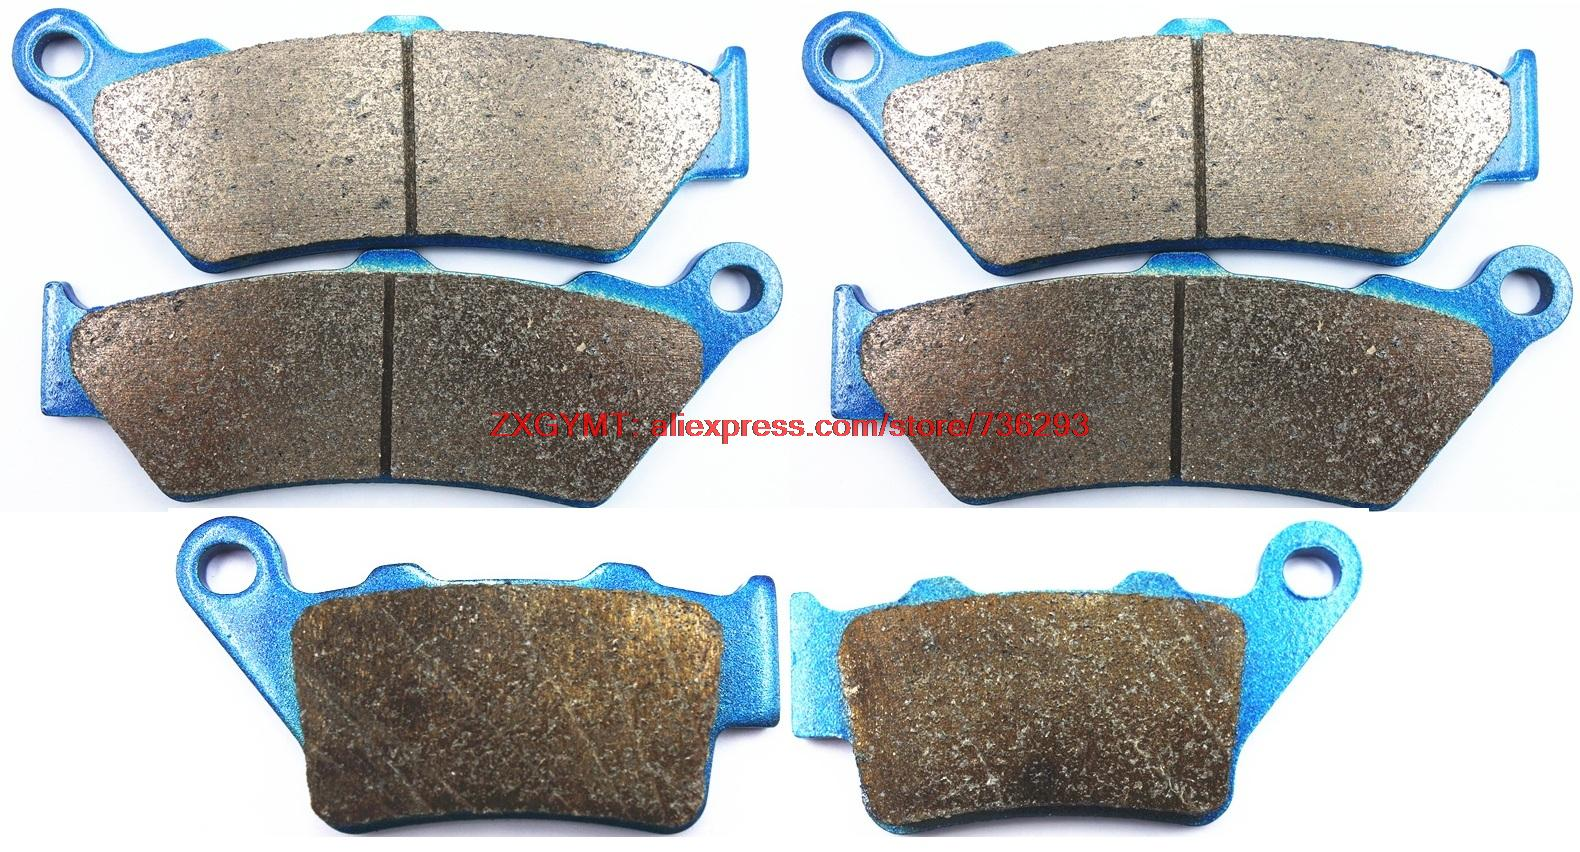 ФОТО Sinter Motorcycle Disc Brake Pads Set fit BMW F800 F800GS F 800 GS 2013 & up